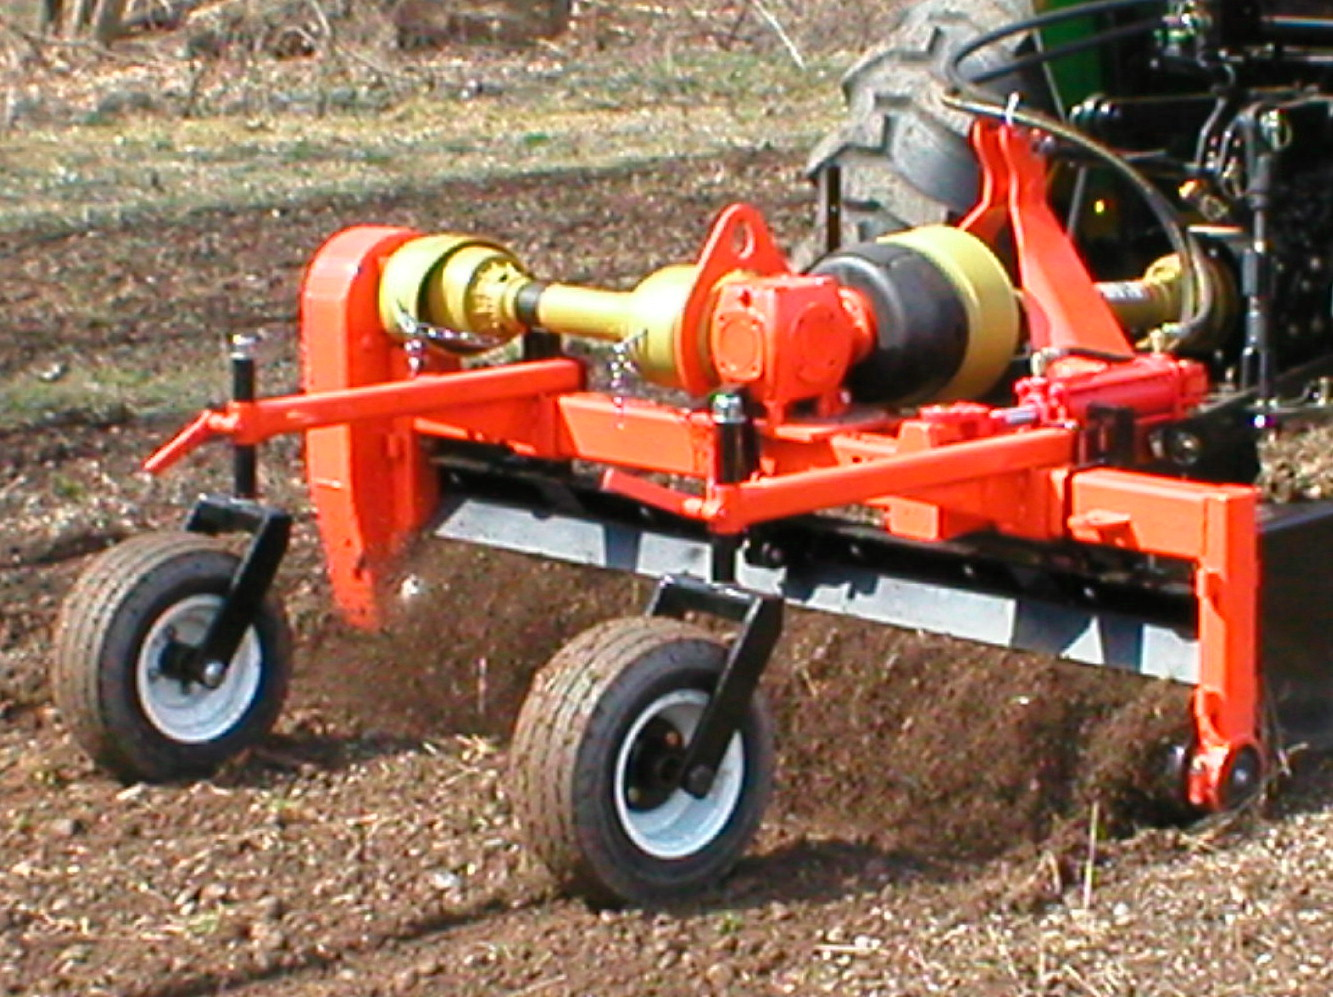 The PTO Powered Power Rake In Operation - Powered Soil Pulverizer/Conditioner